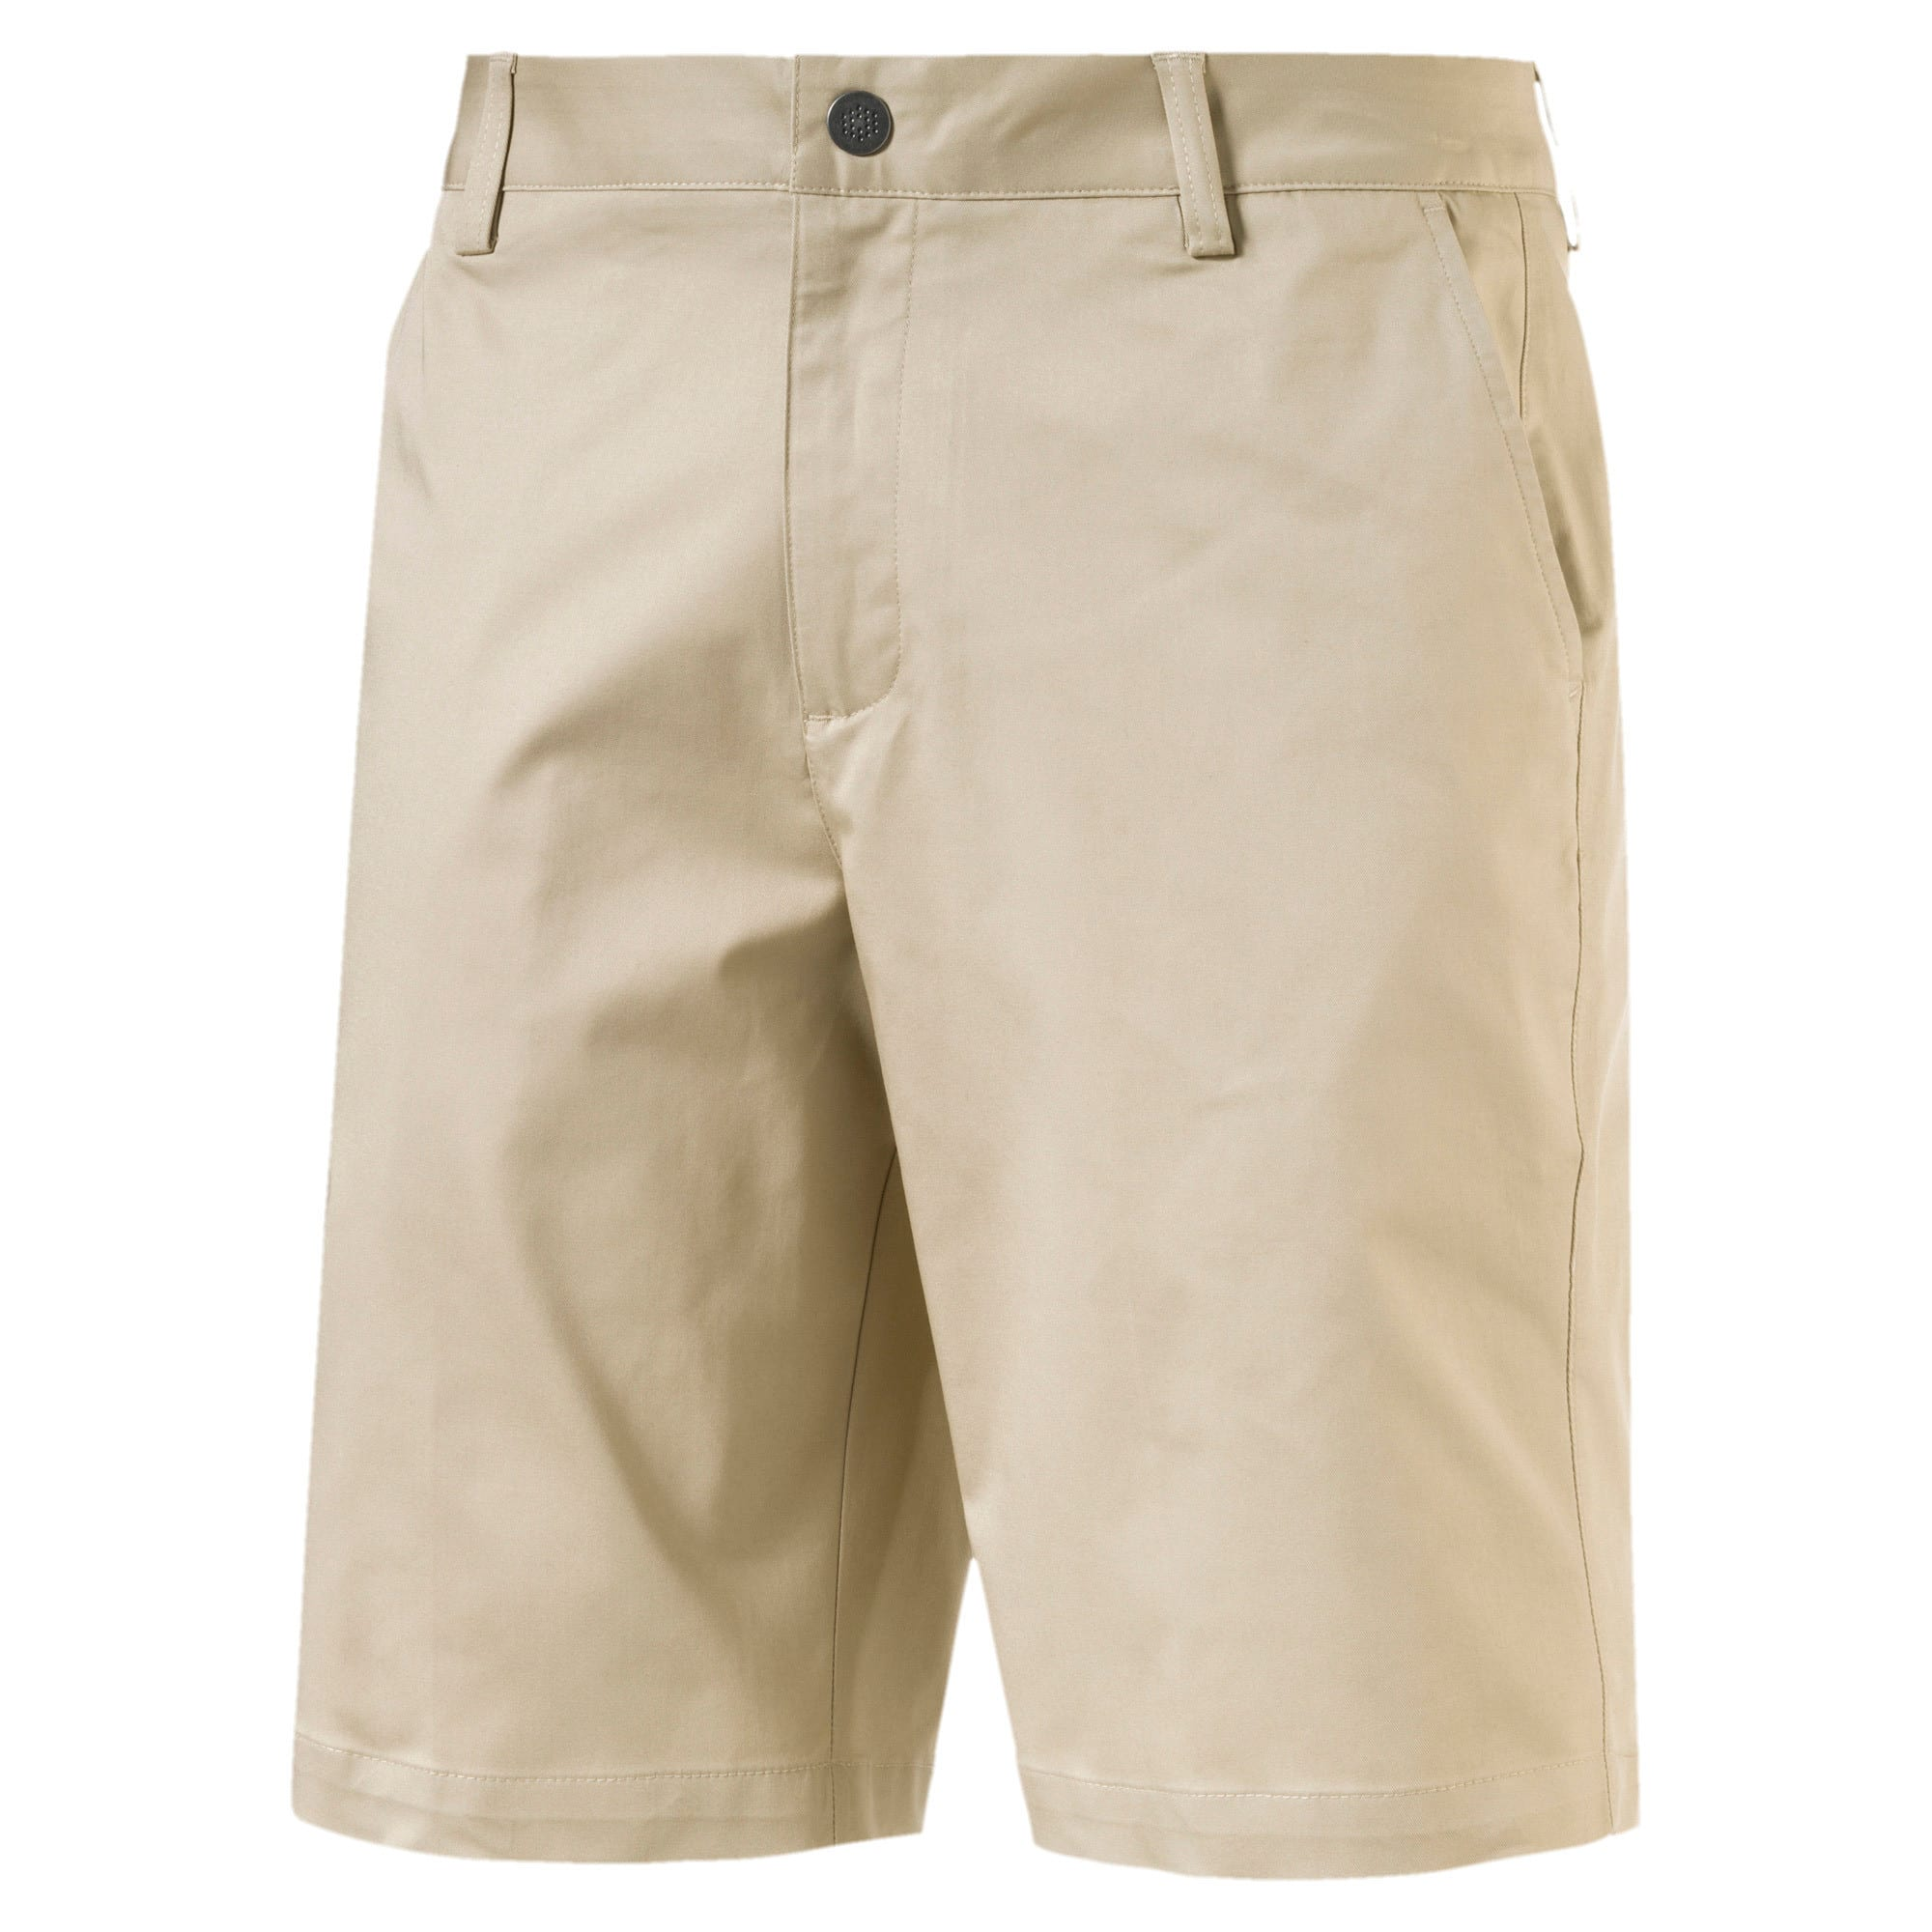 Thumbnail 1 of Golf Men's Tailored Chino Shorts, White Pepper, medium-IND